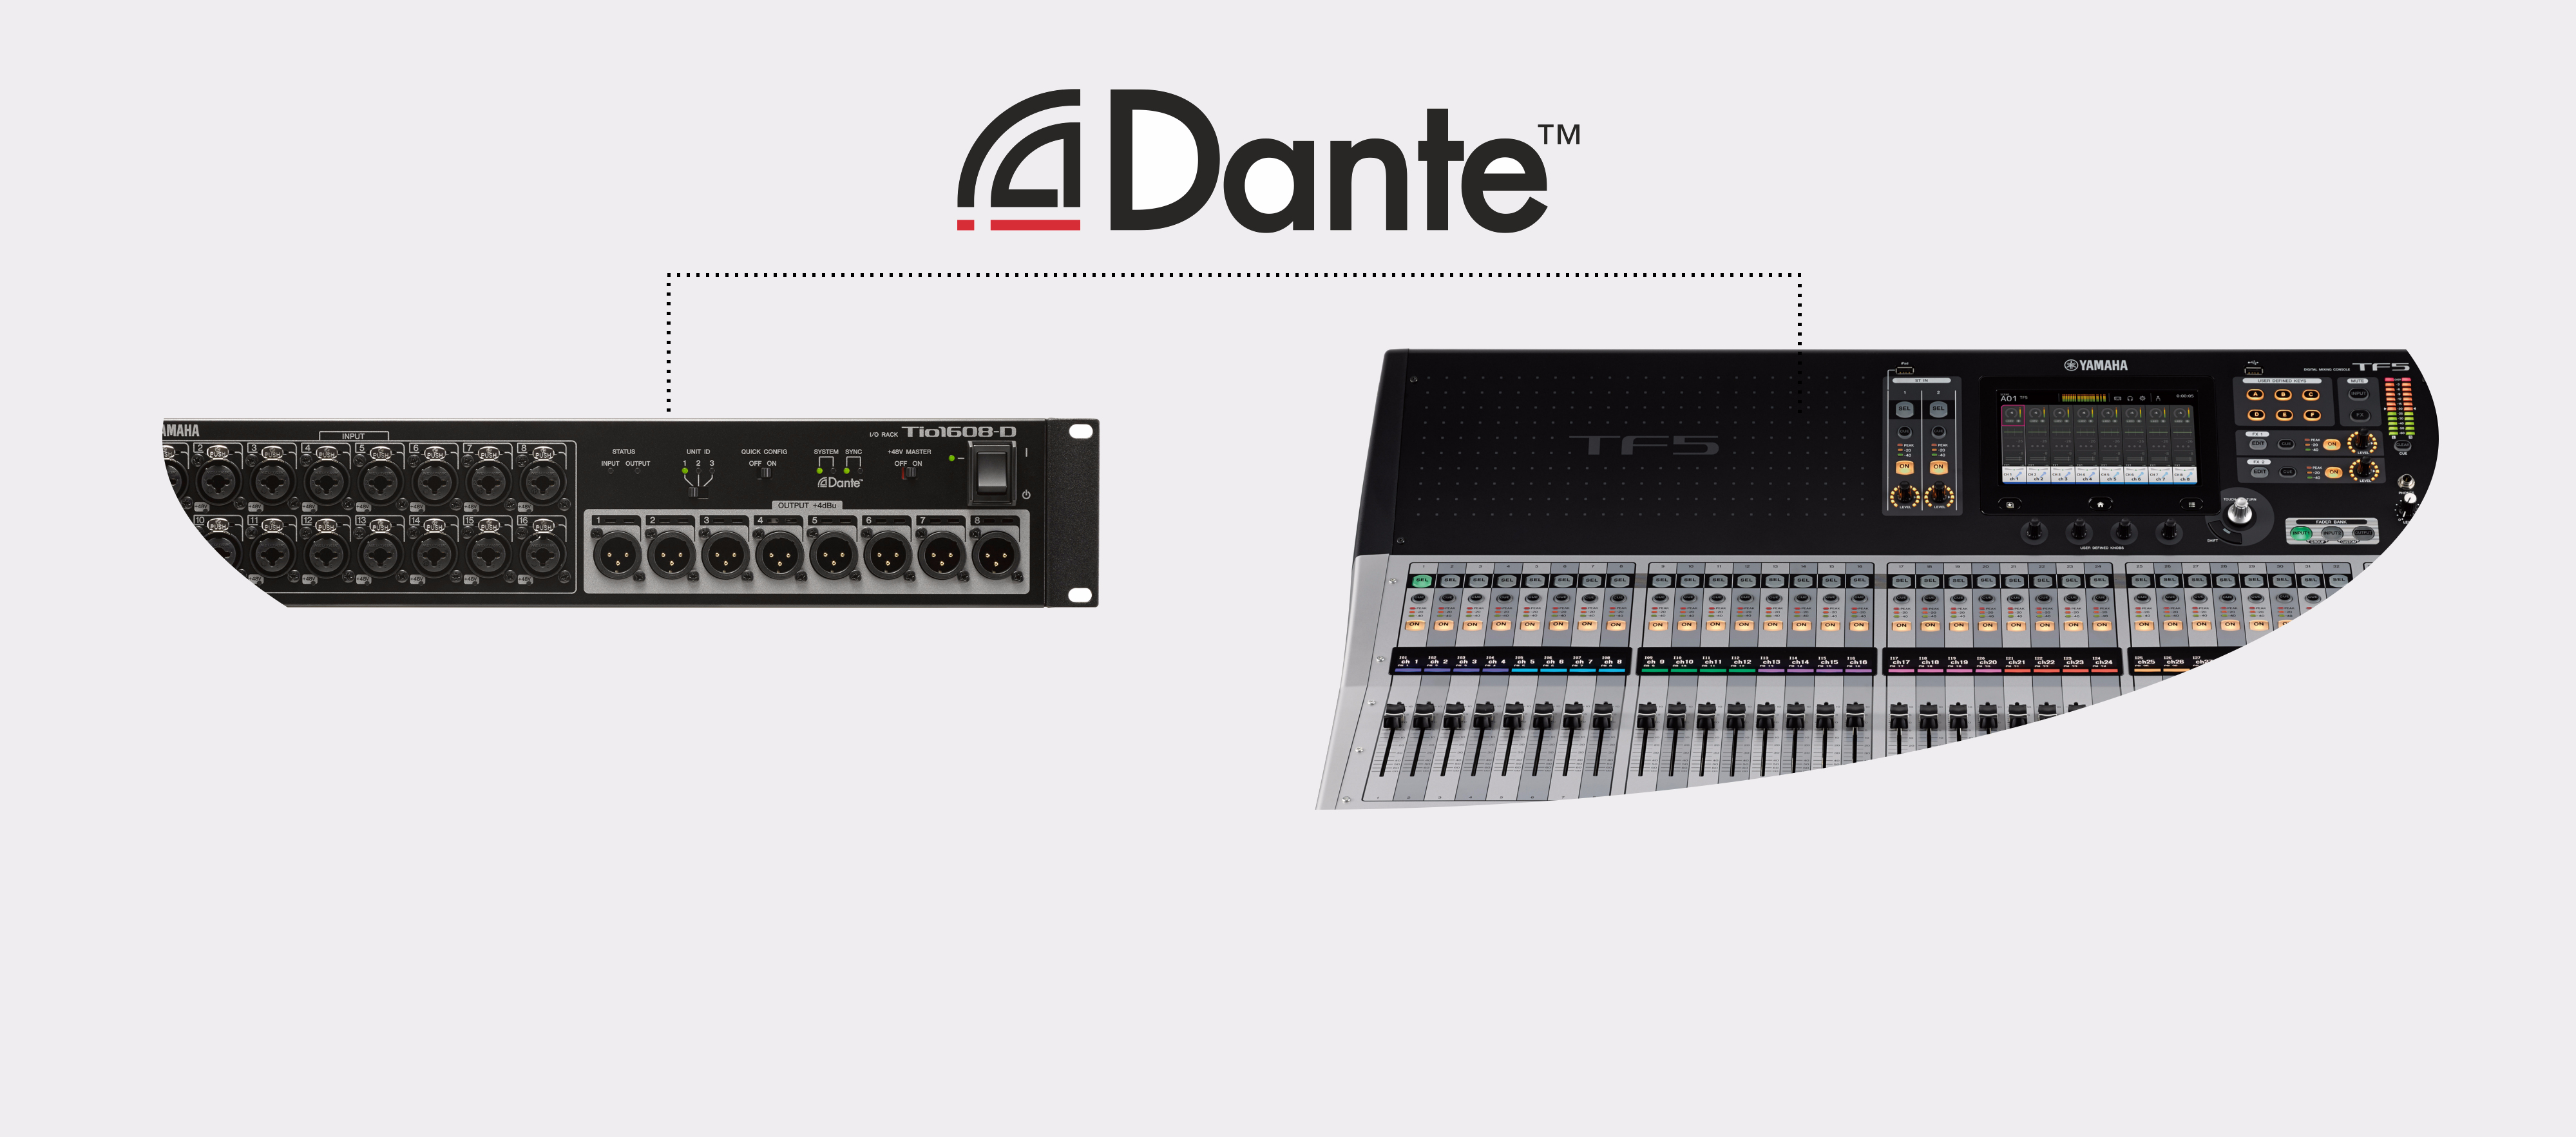 Dante allows everyone to create an effective setup with or without IT-network knowledge.